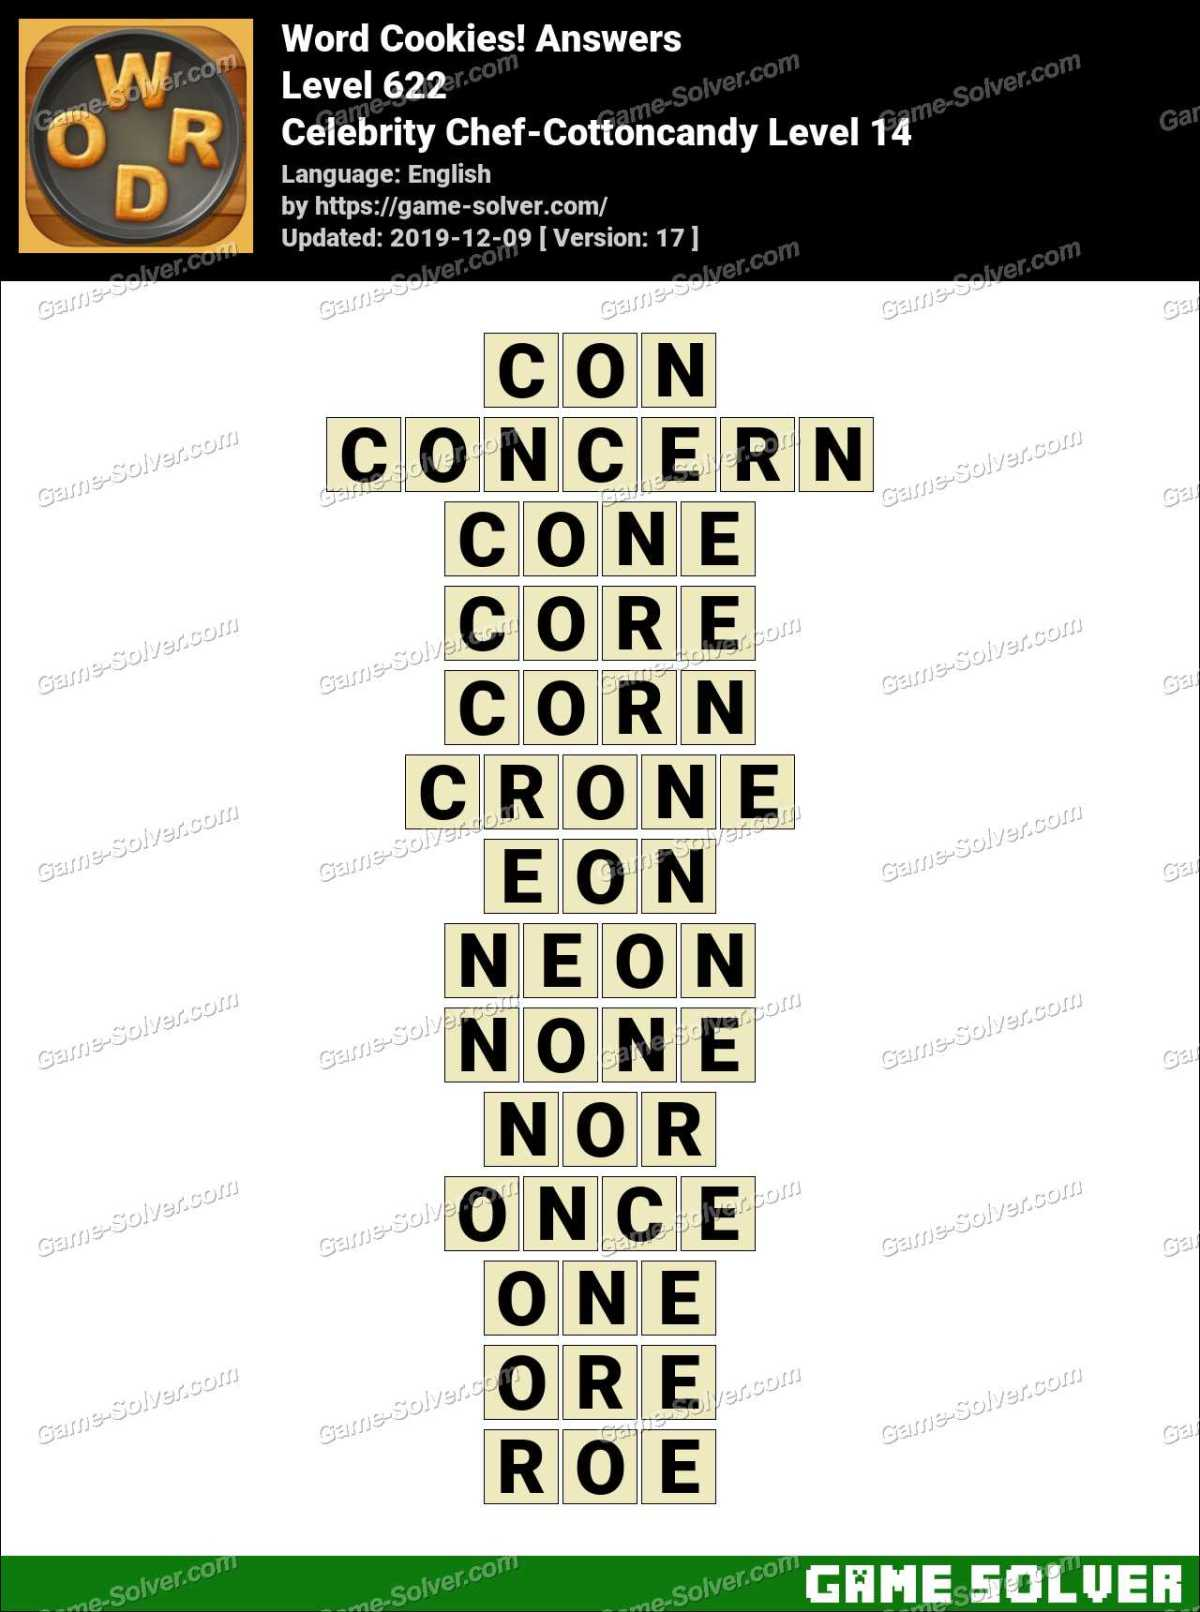 Word Cookies Celebrity Chef-Cottoncandy Level 14 Answers